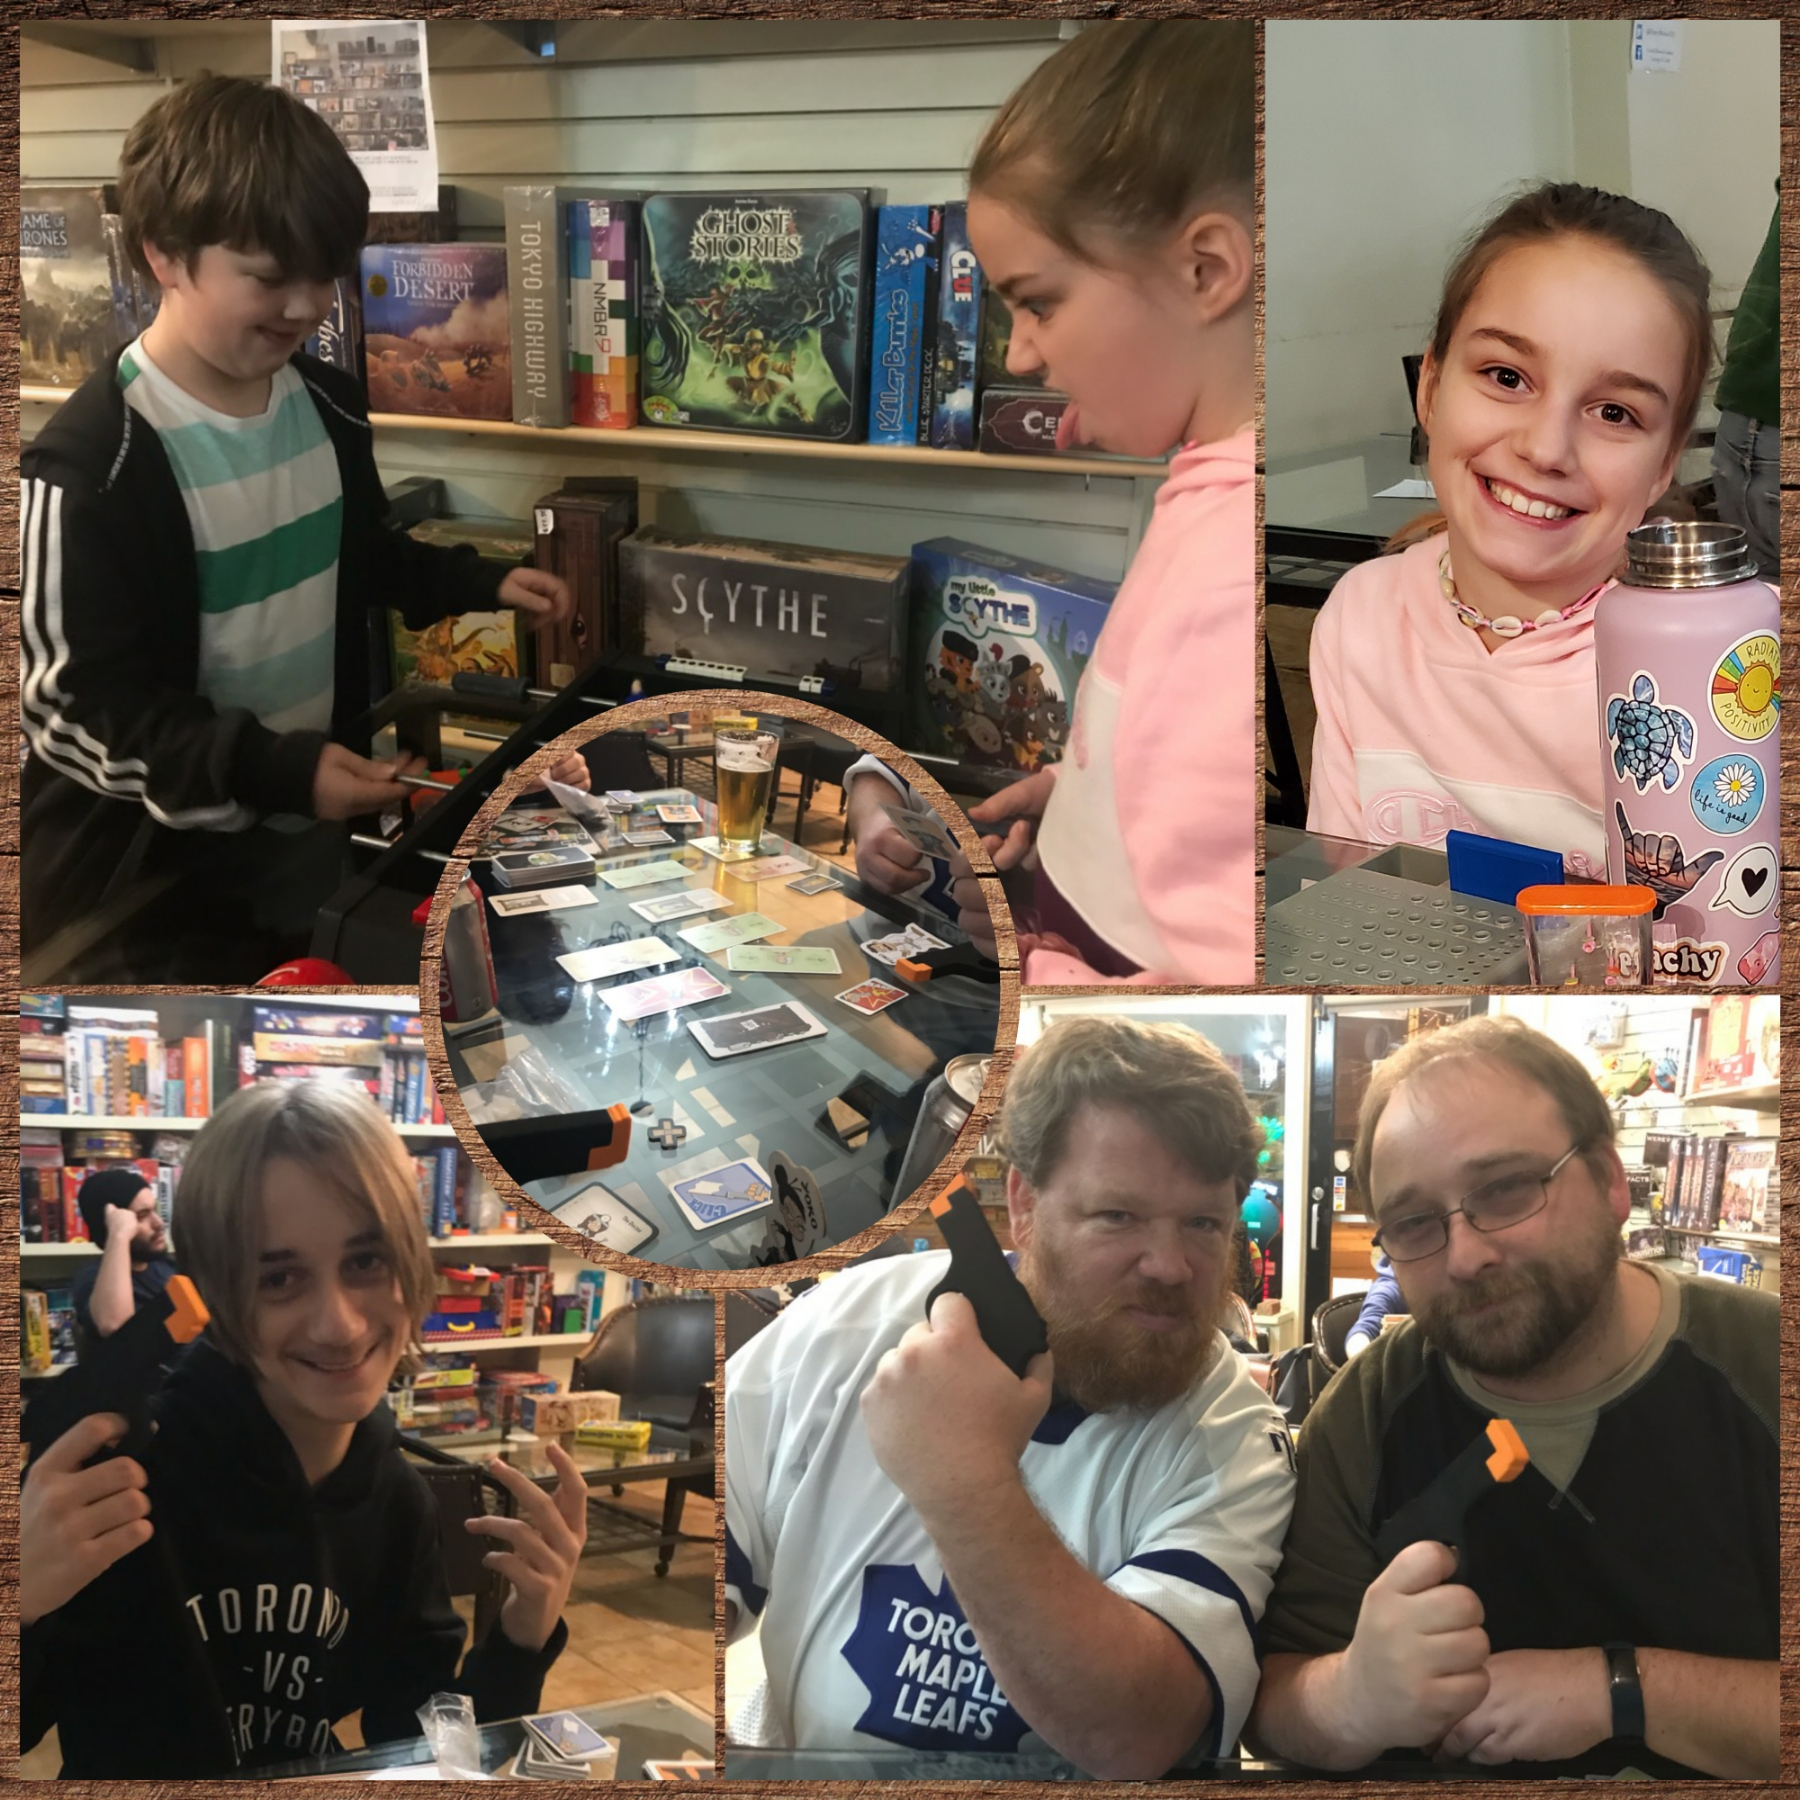 POD: Board Games with Friends